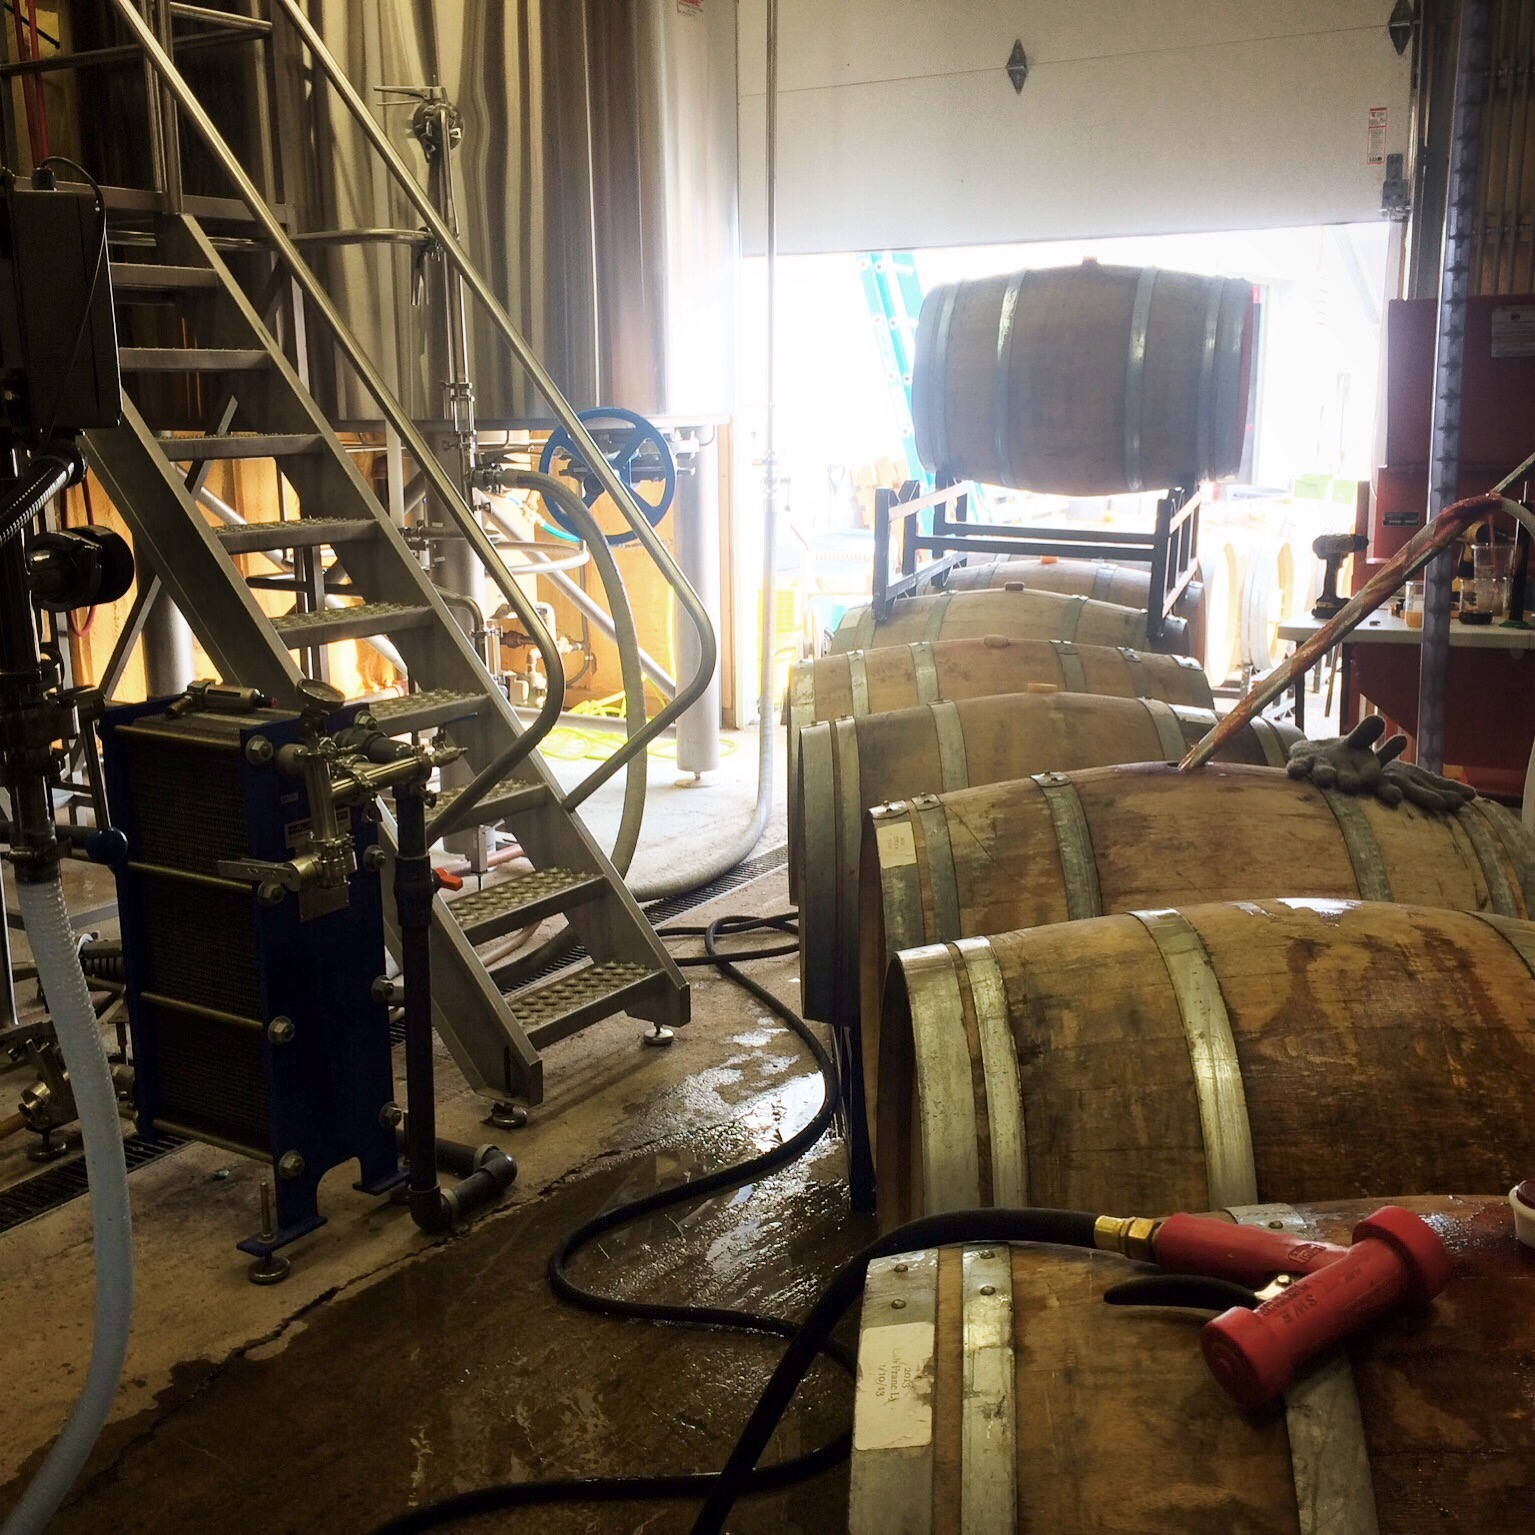 Filling the barrels to bring back to Beacon.